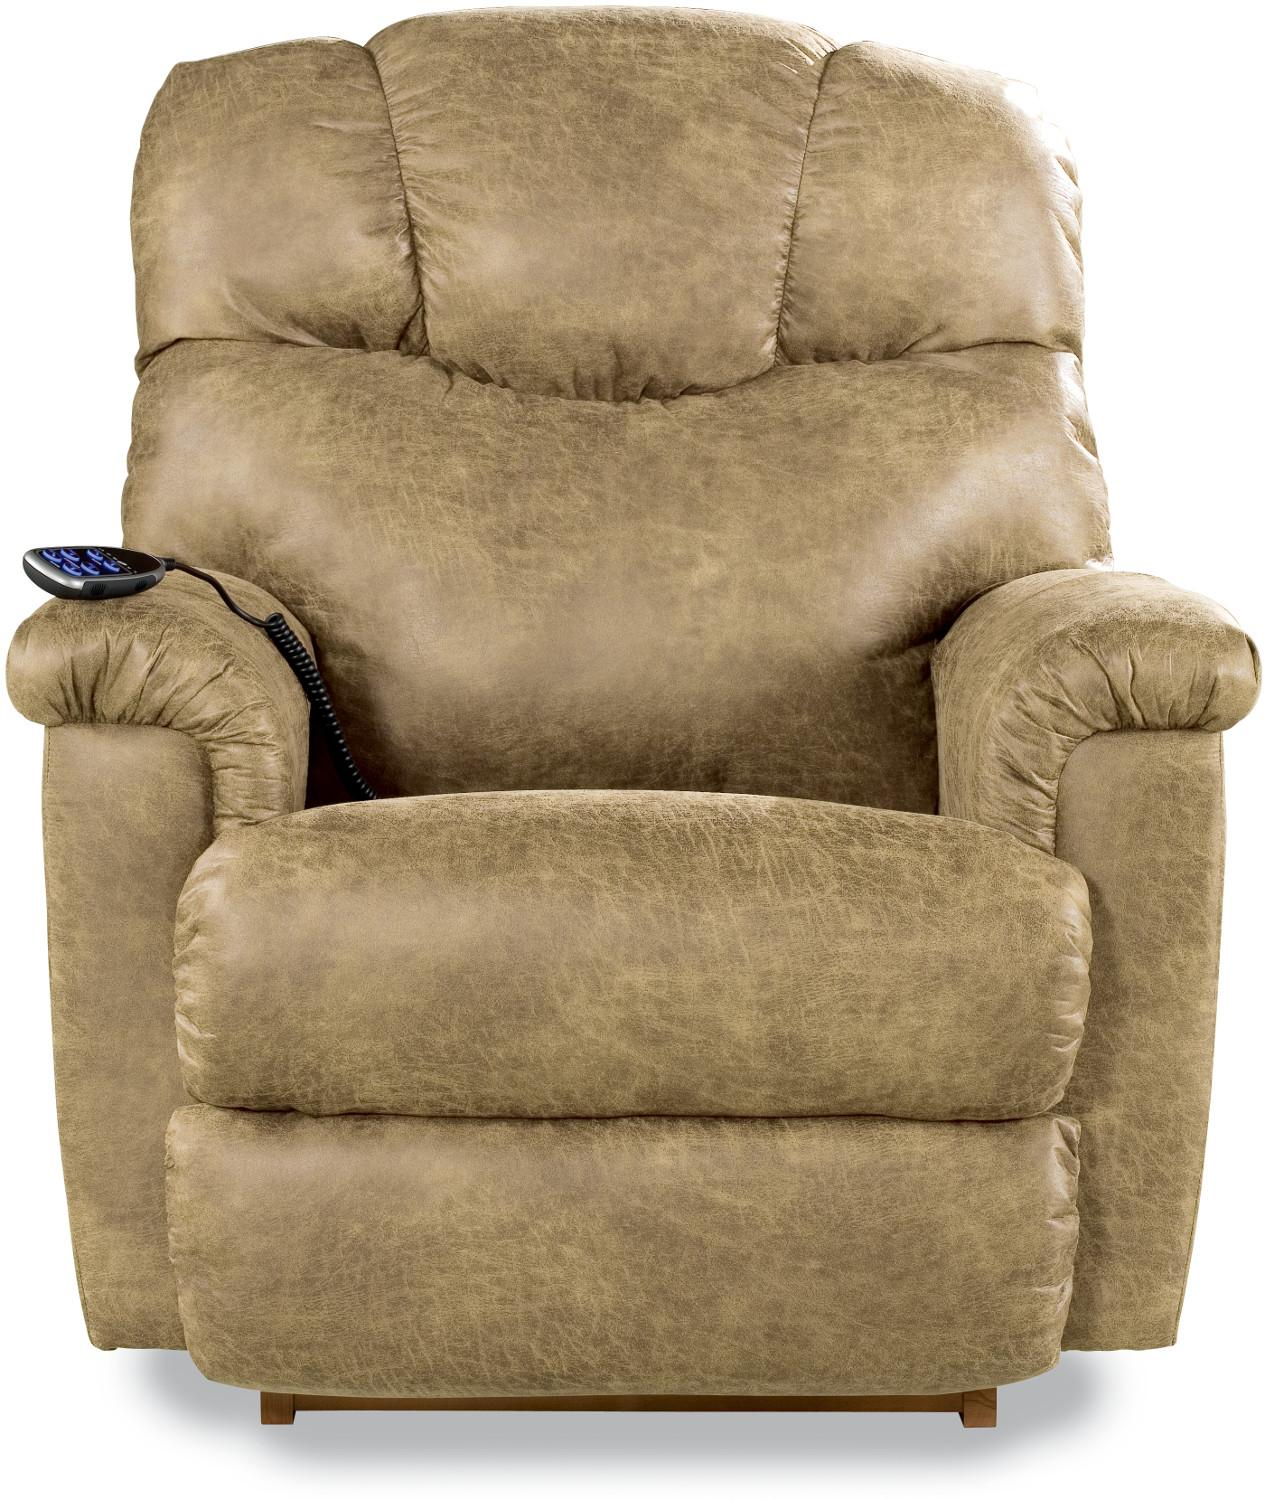 La-Z-Boy Lancer Power Recliner - Item Number: P10515RE994772